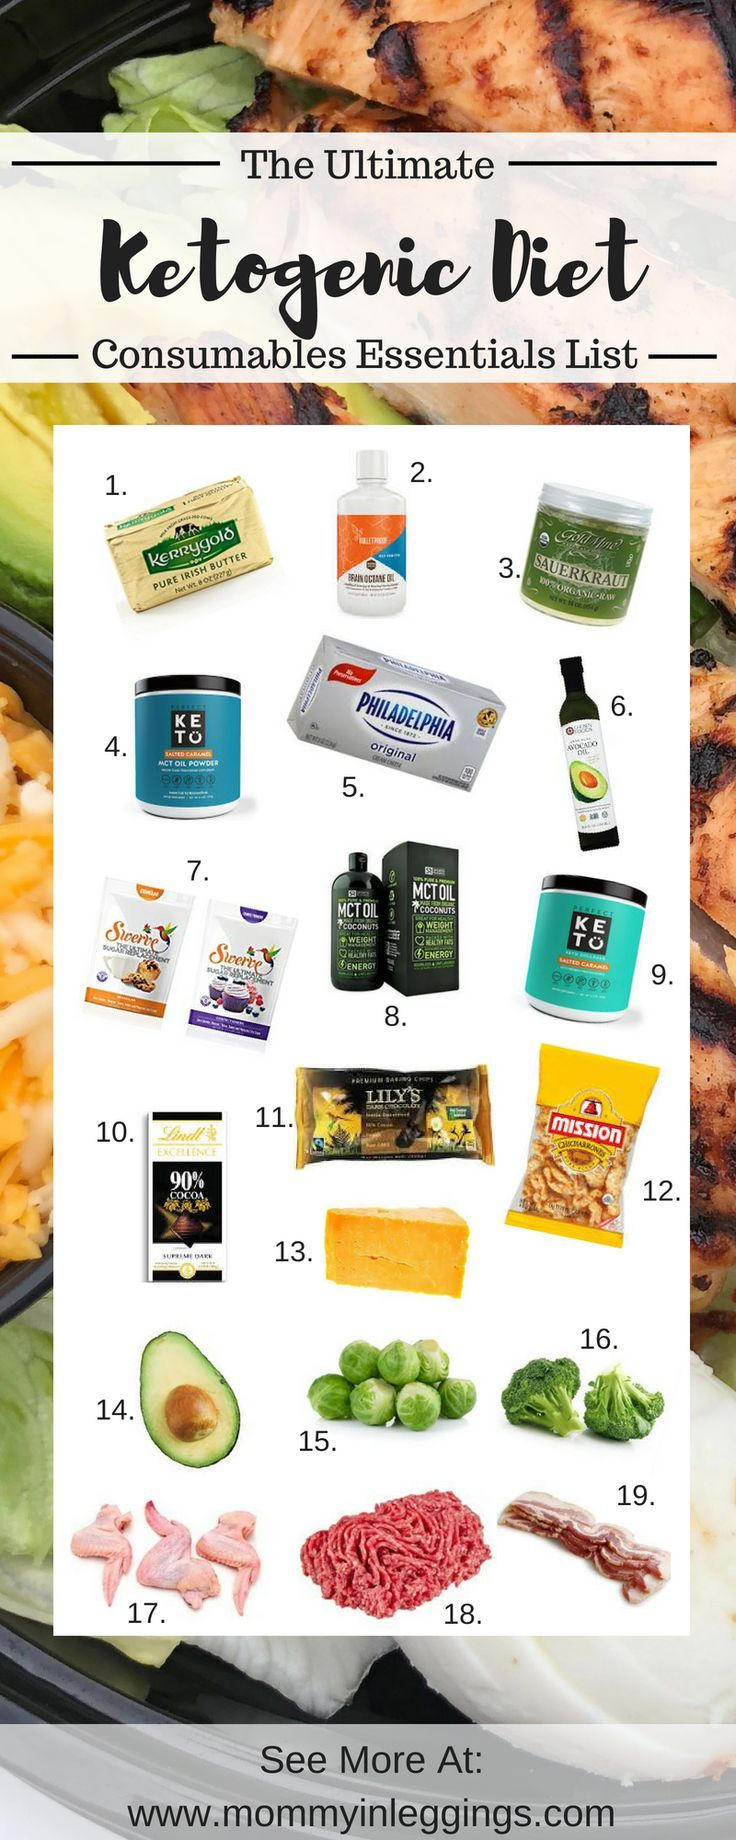 36 Keto Essentials You Must Have – Mommy in Leggings